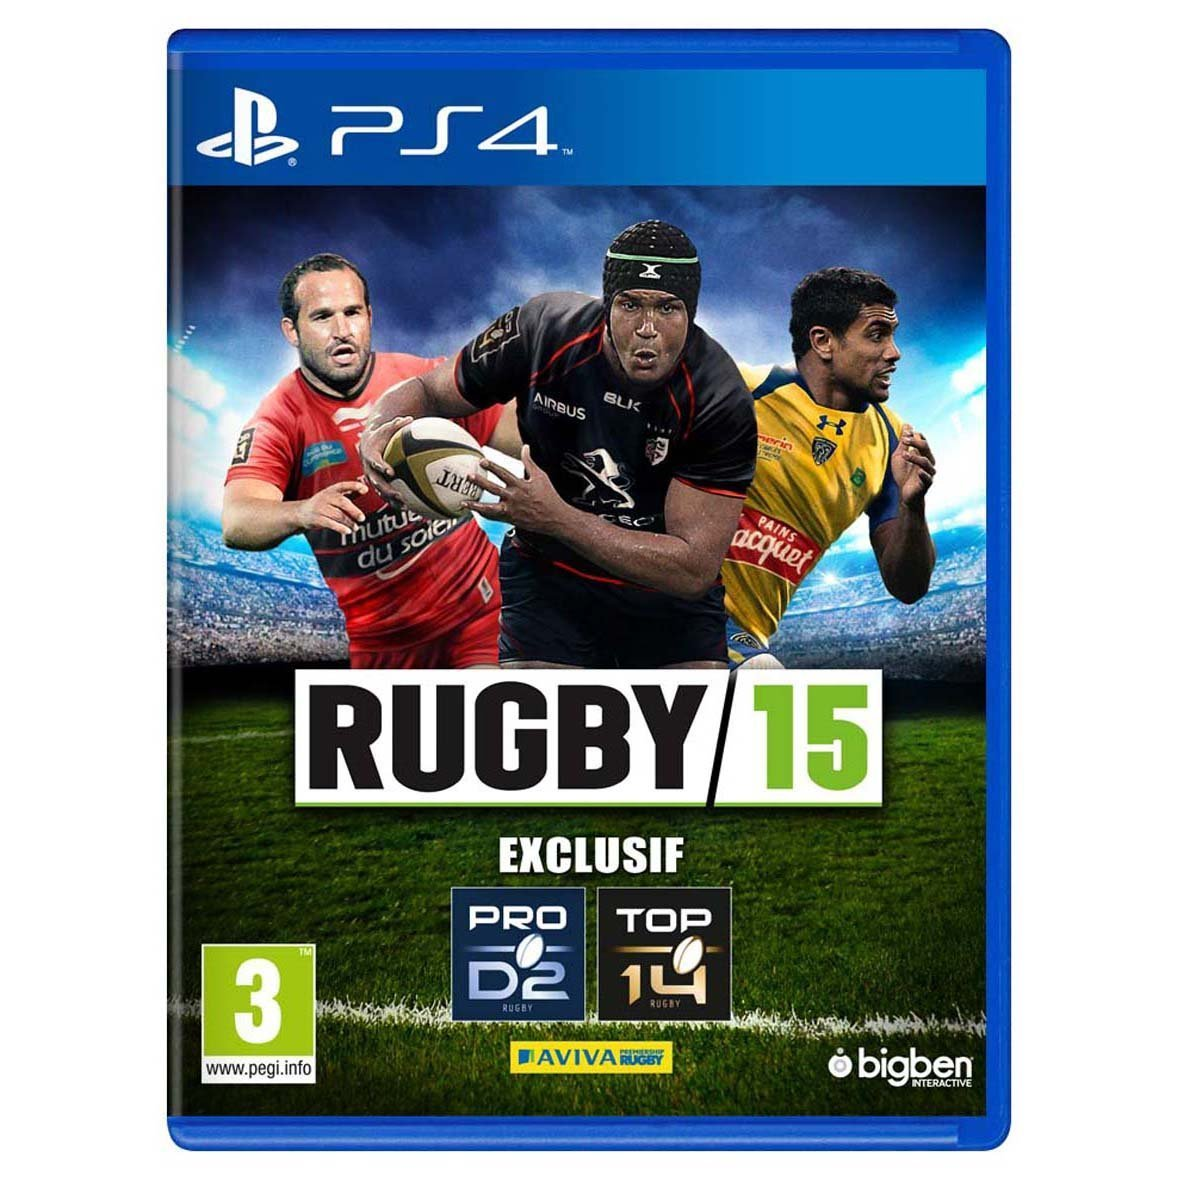 rugby 15 sur playstation 4. Black Bedroom Furniture Sets. Home Design Ideas